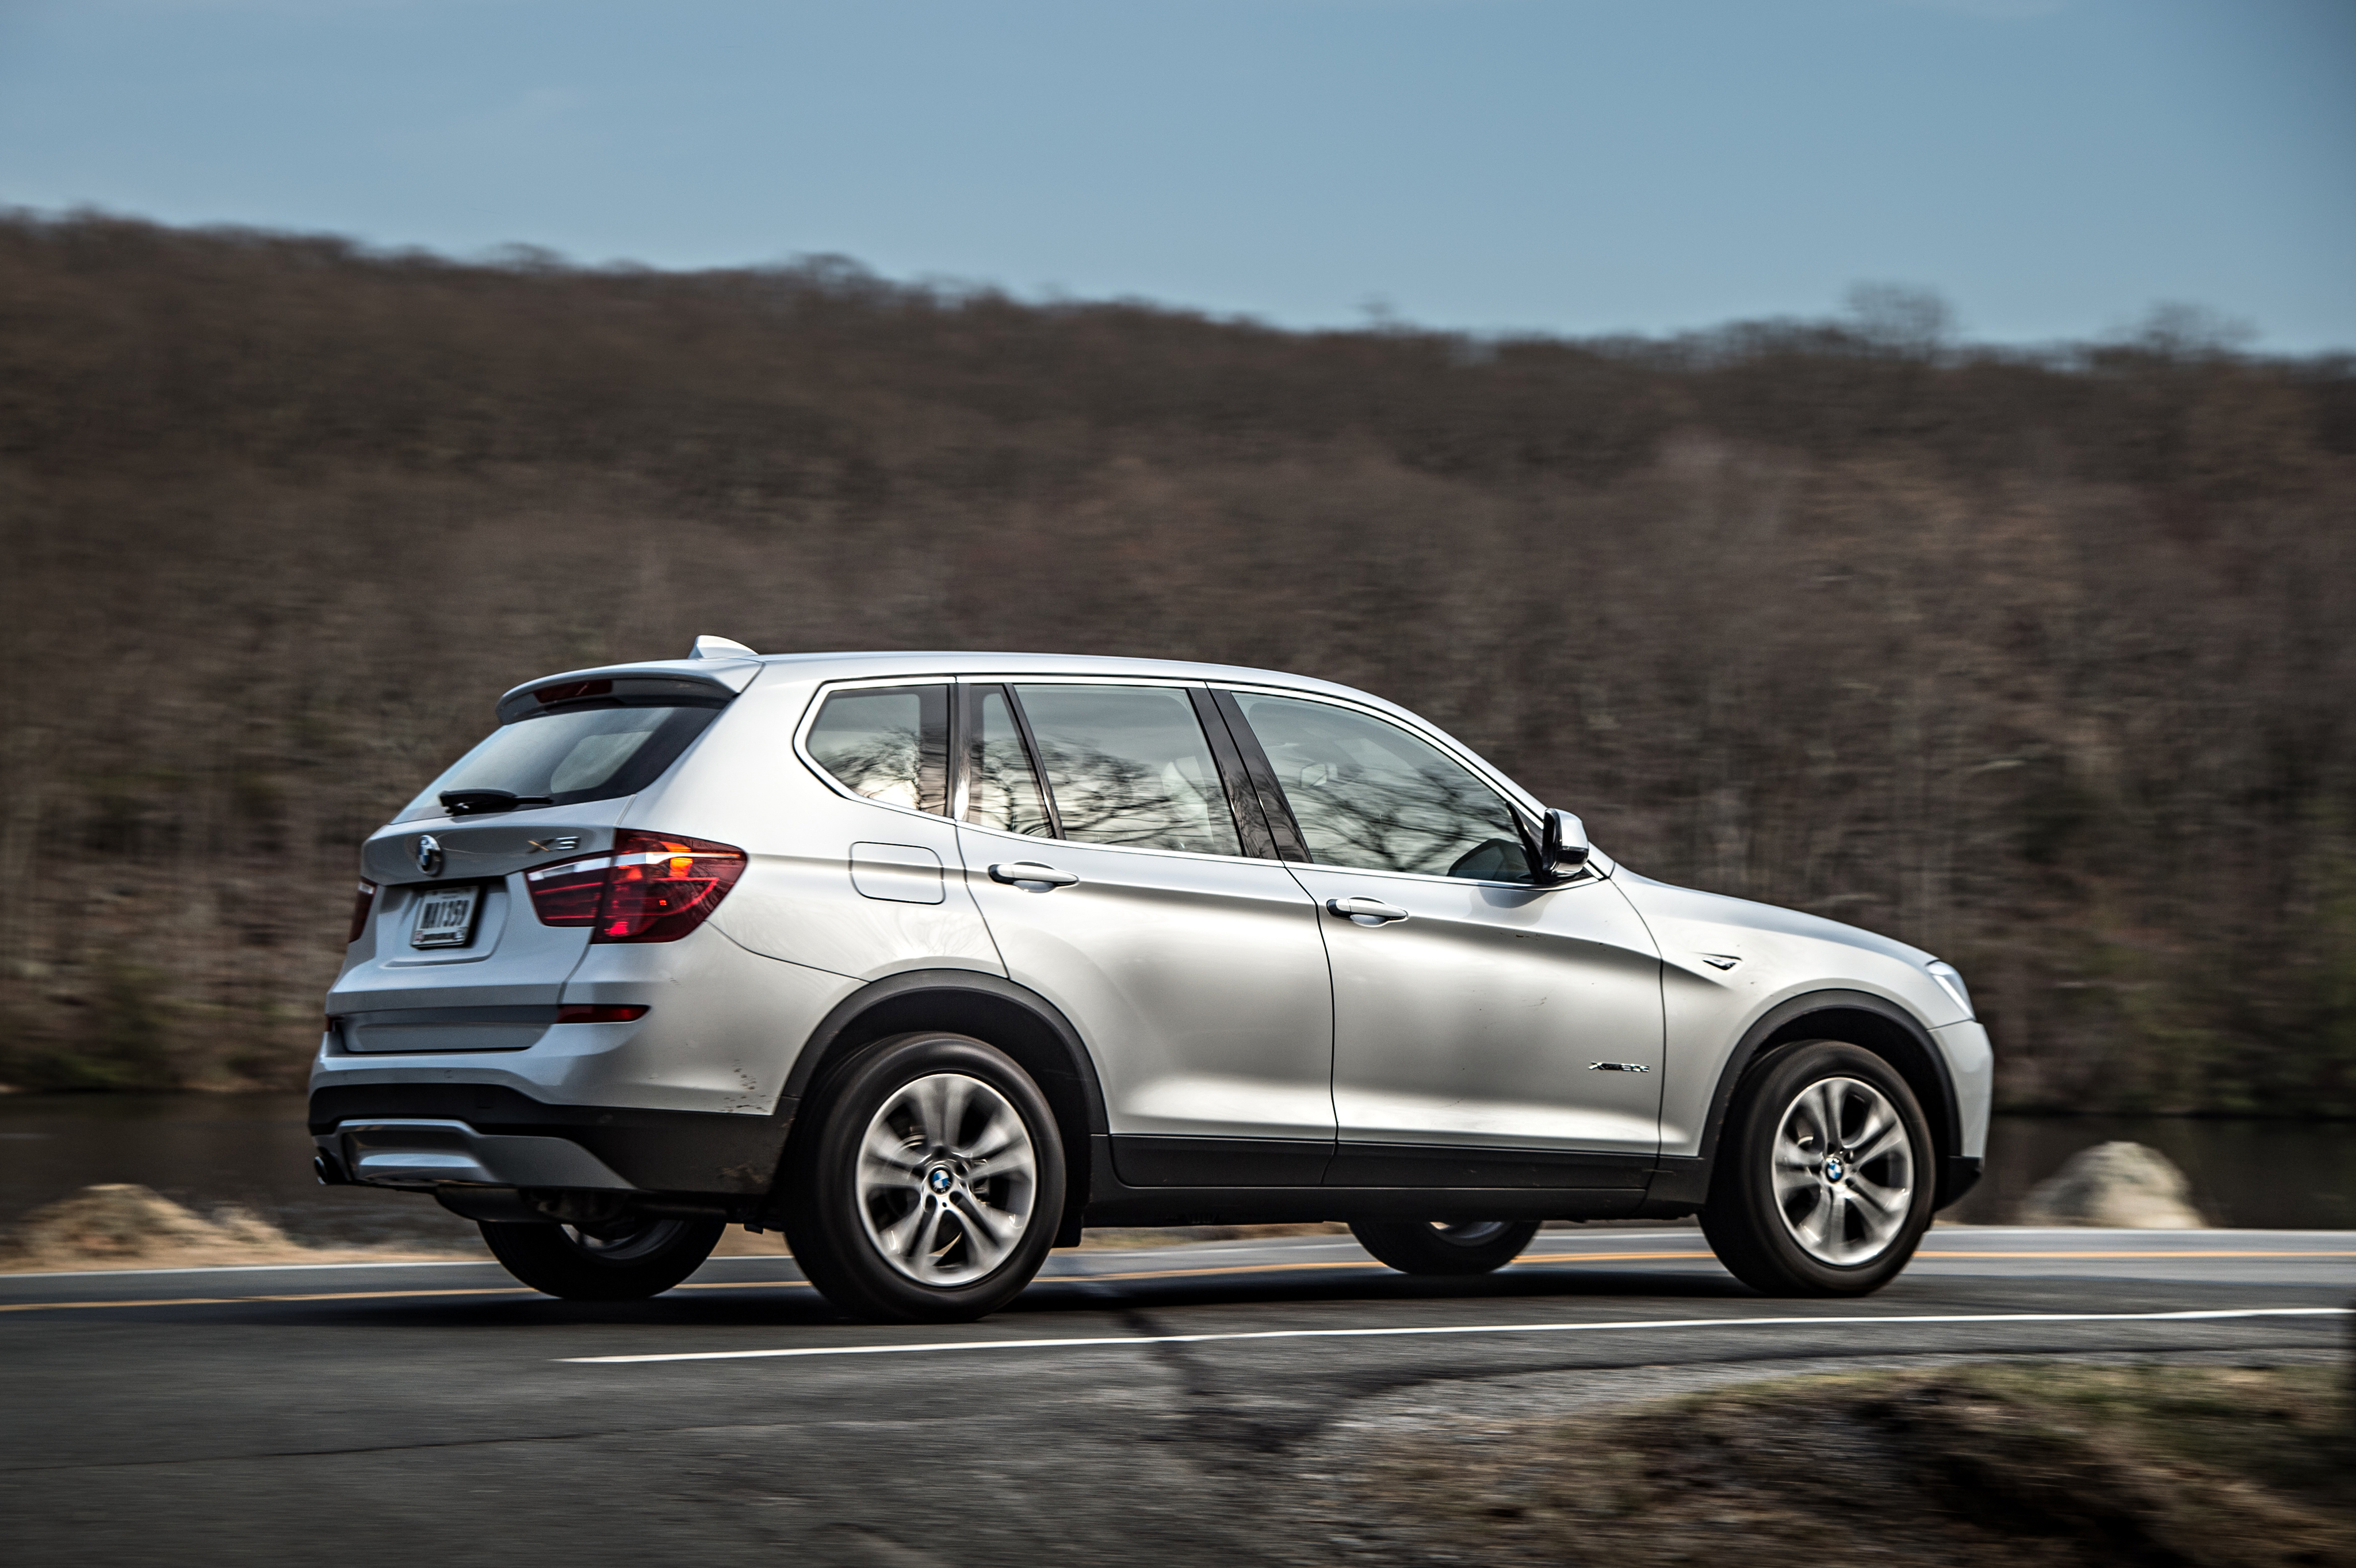 BMW X3 xDrive20d 2014 photo - 5